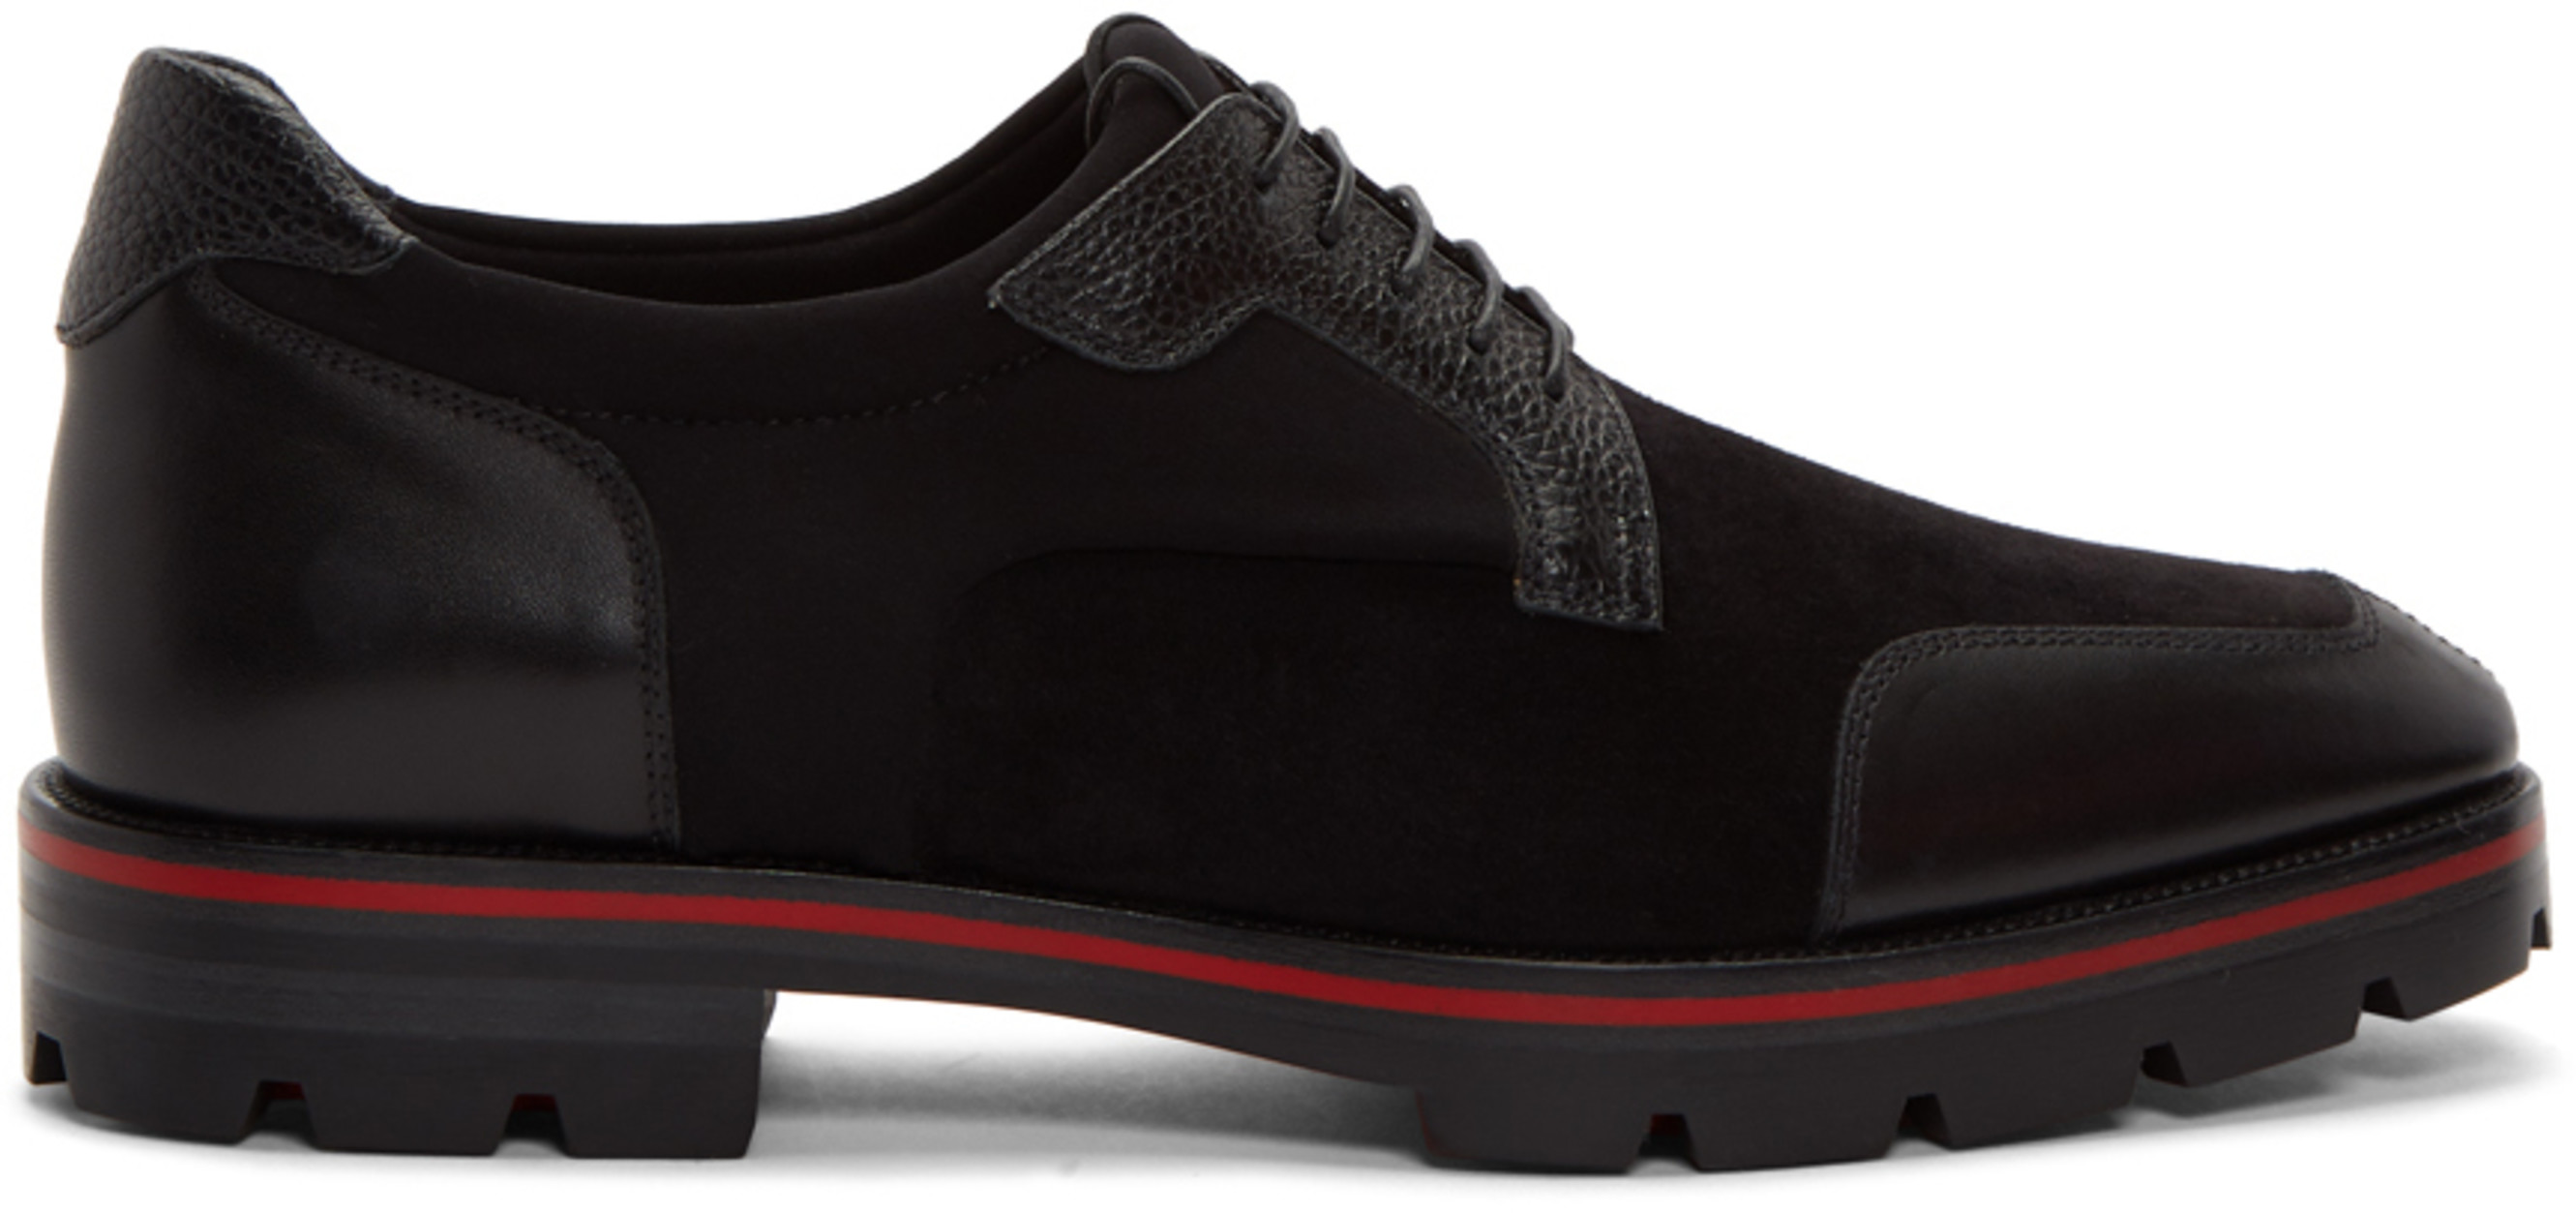 b54f93b8a704 Christian Louboutin for Men SS19 Collection